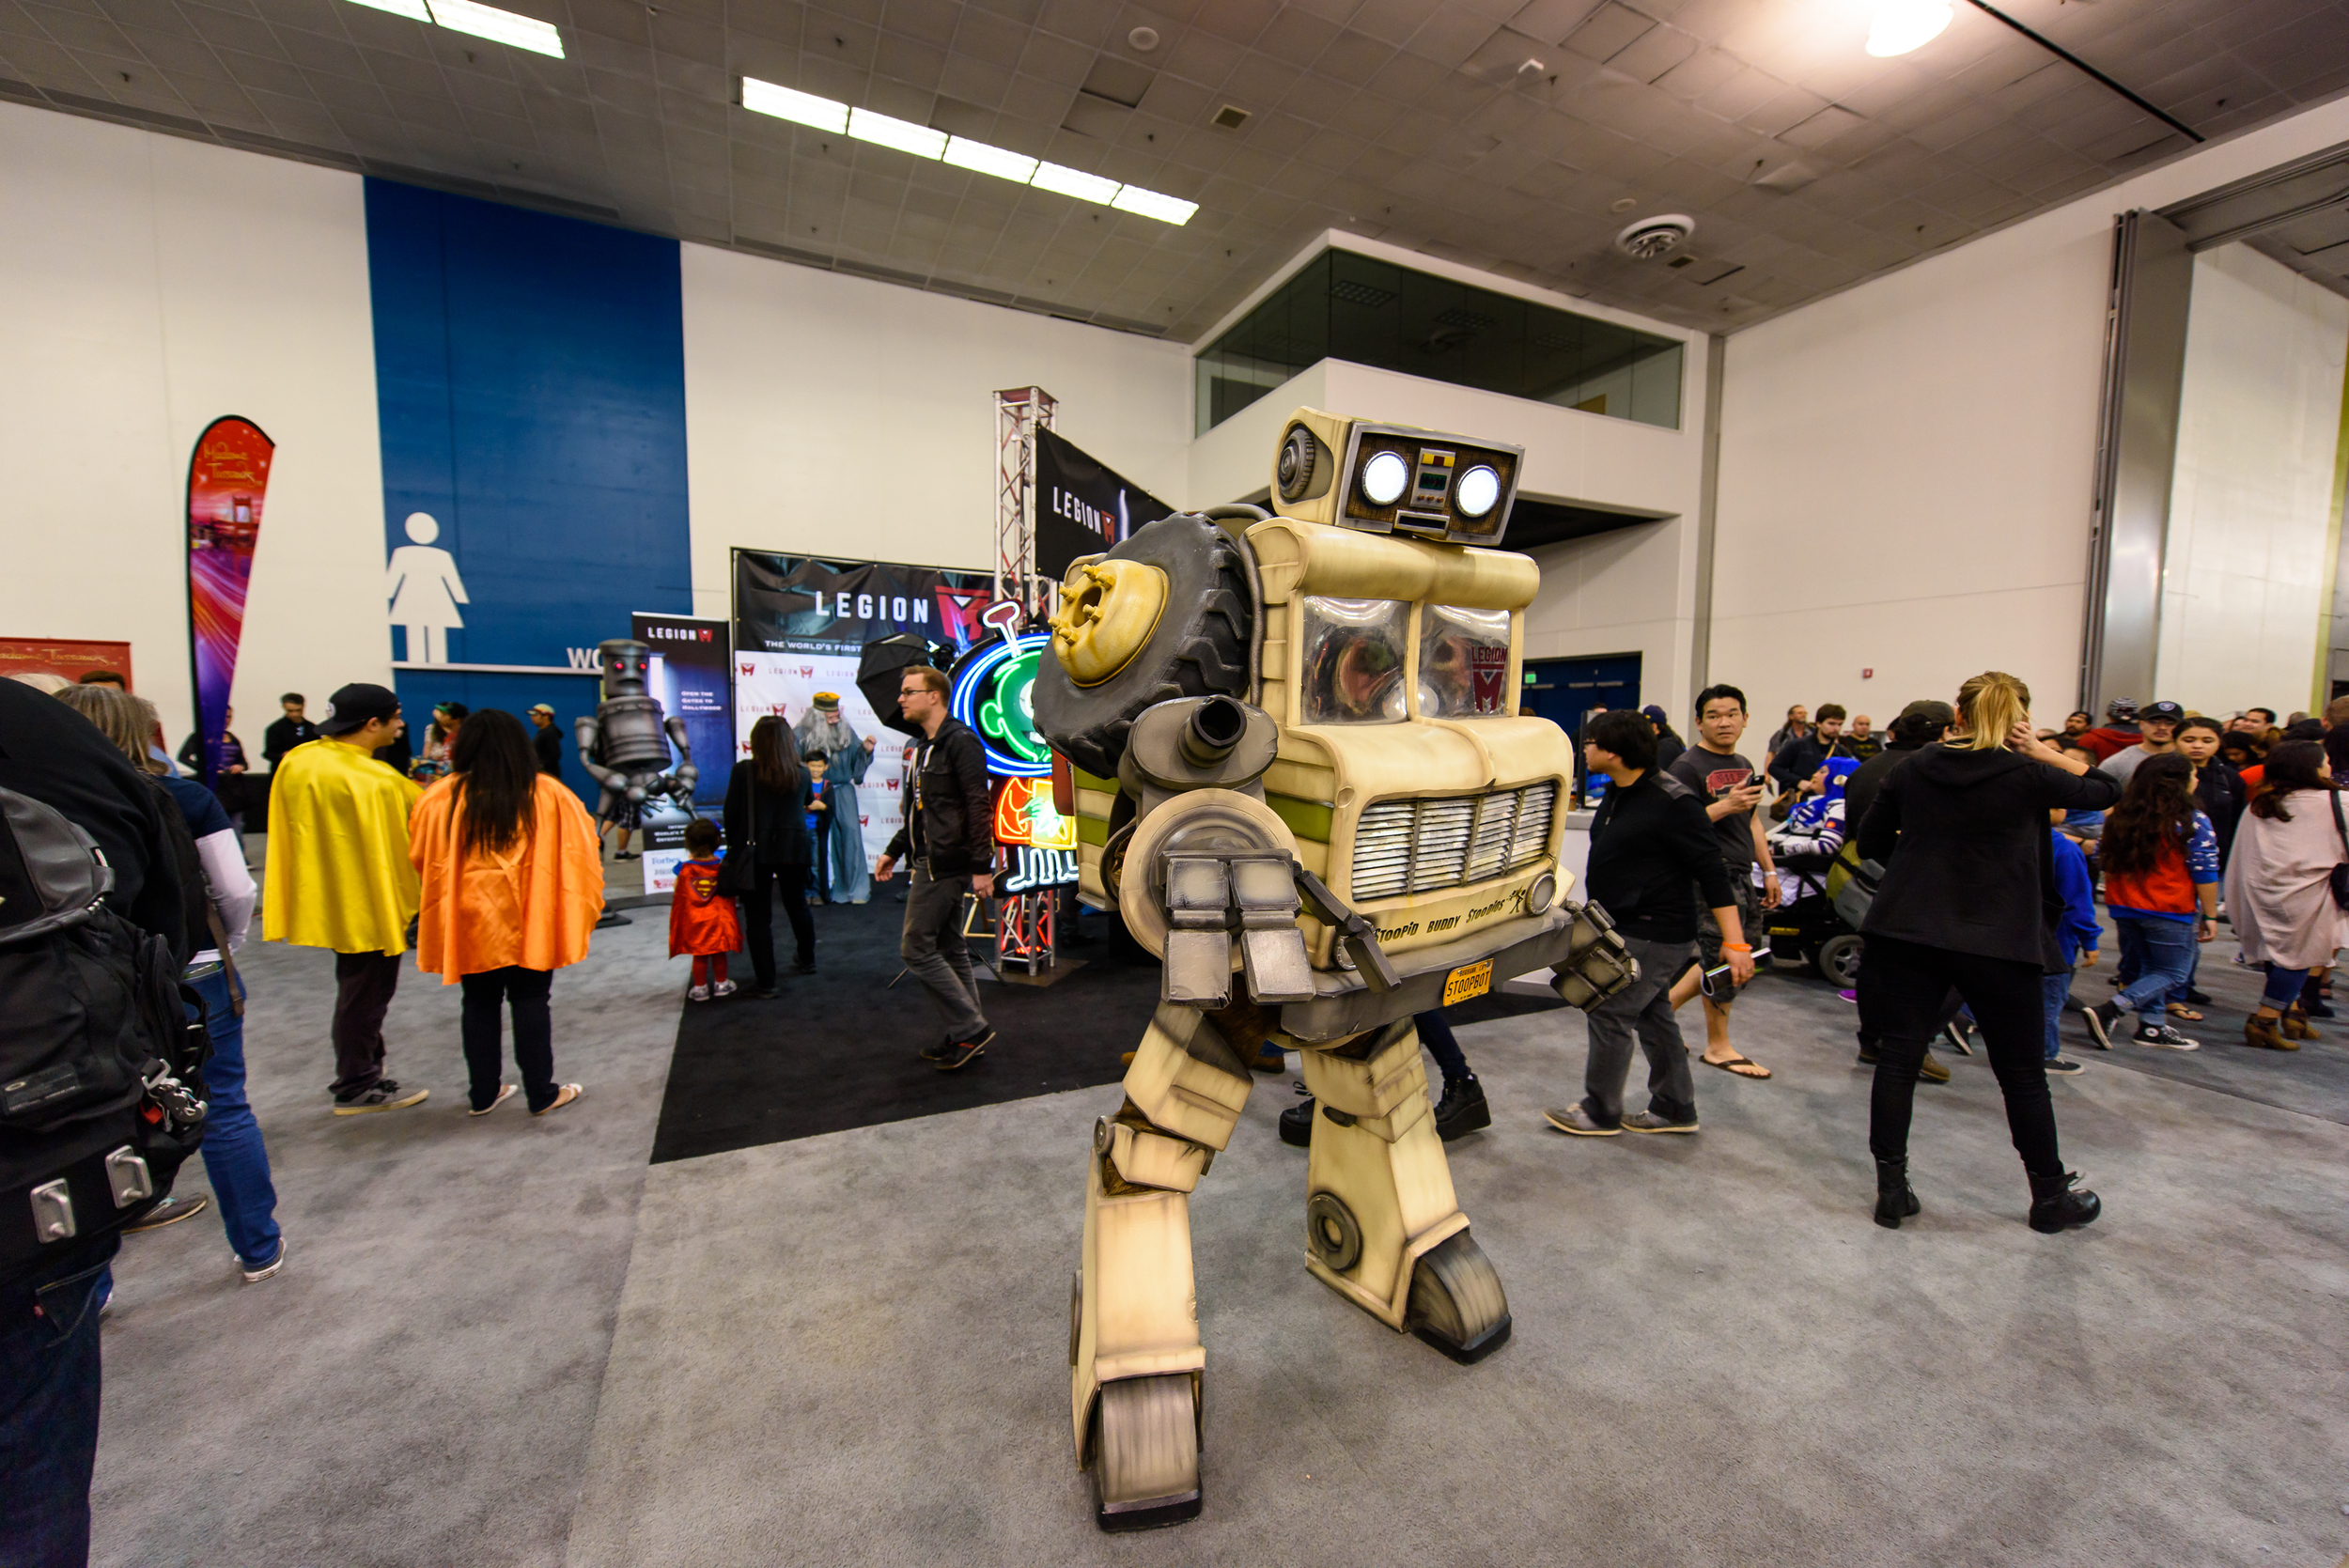 """There's a great story behind """"StoopBot"""". When Stoopid Buddies Stoodio was just starting, they used an old winnebago as their office space. Once the company blew up and """"transformed"""" into a world famous animation house, they built this piece."""